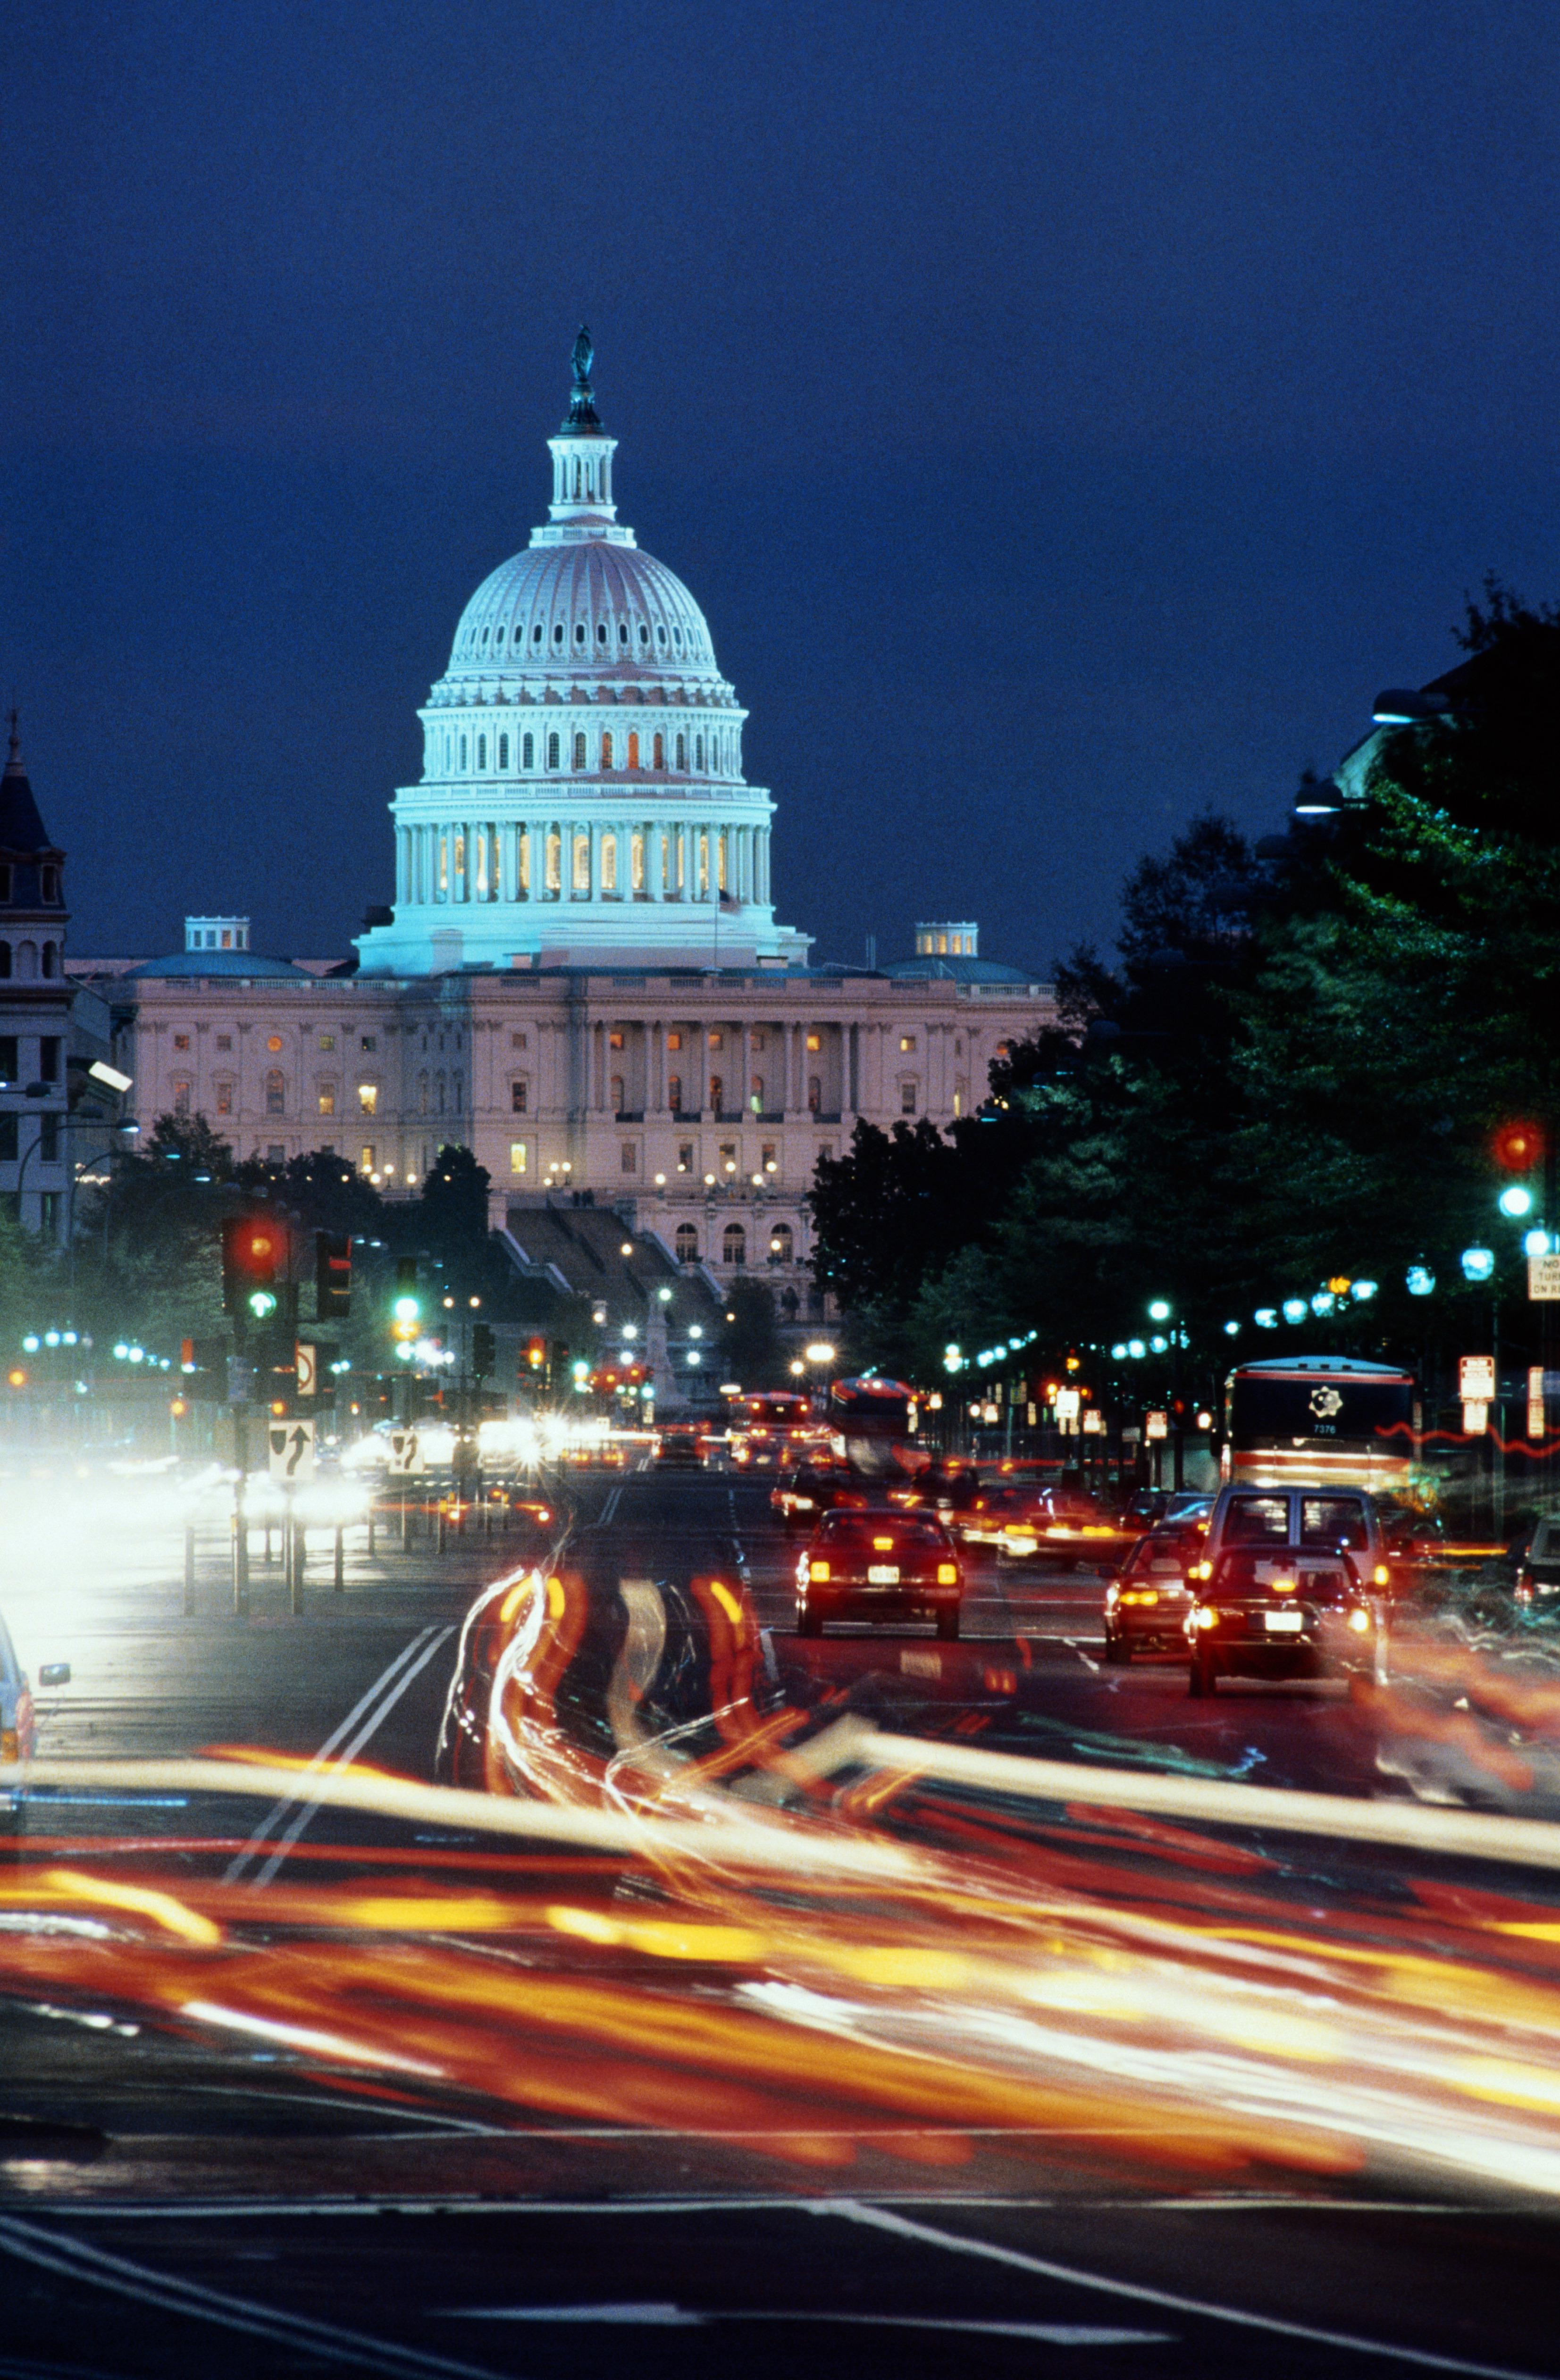 USA, Washington DC, The Capitol, Pennsylvania Avenue, long exposure